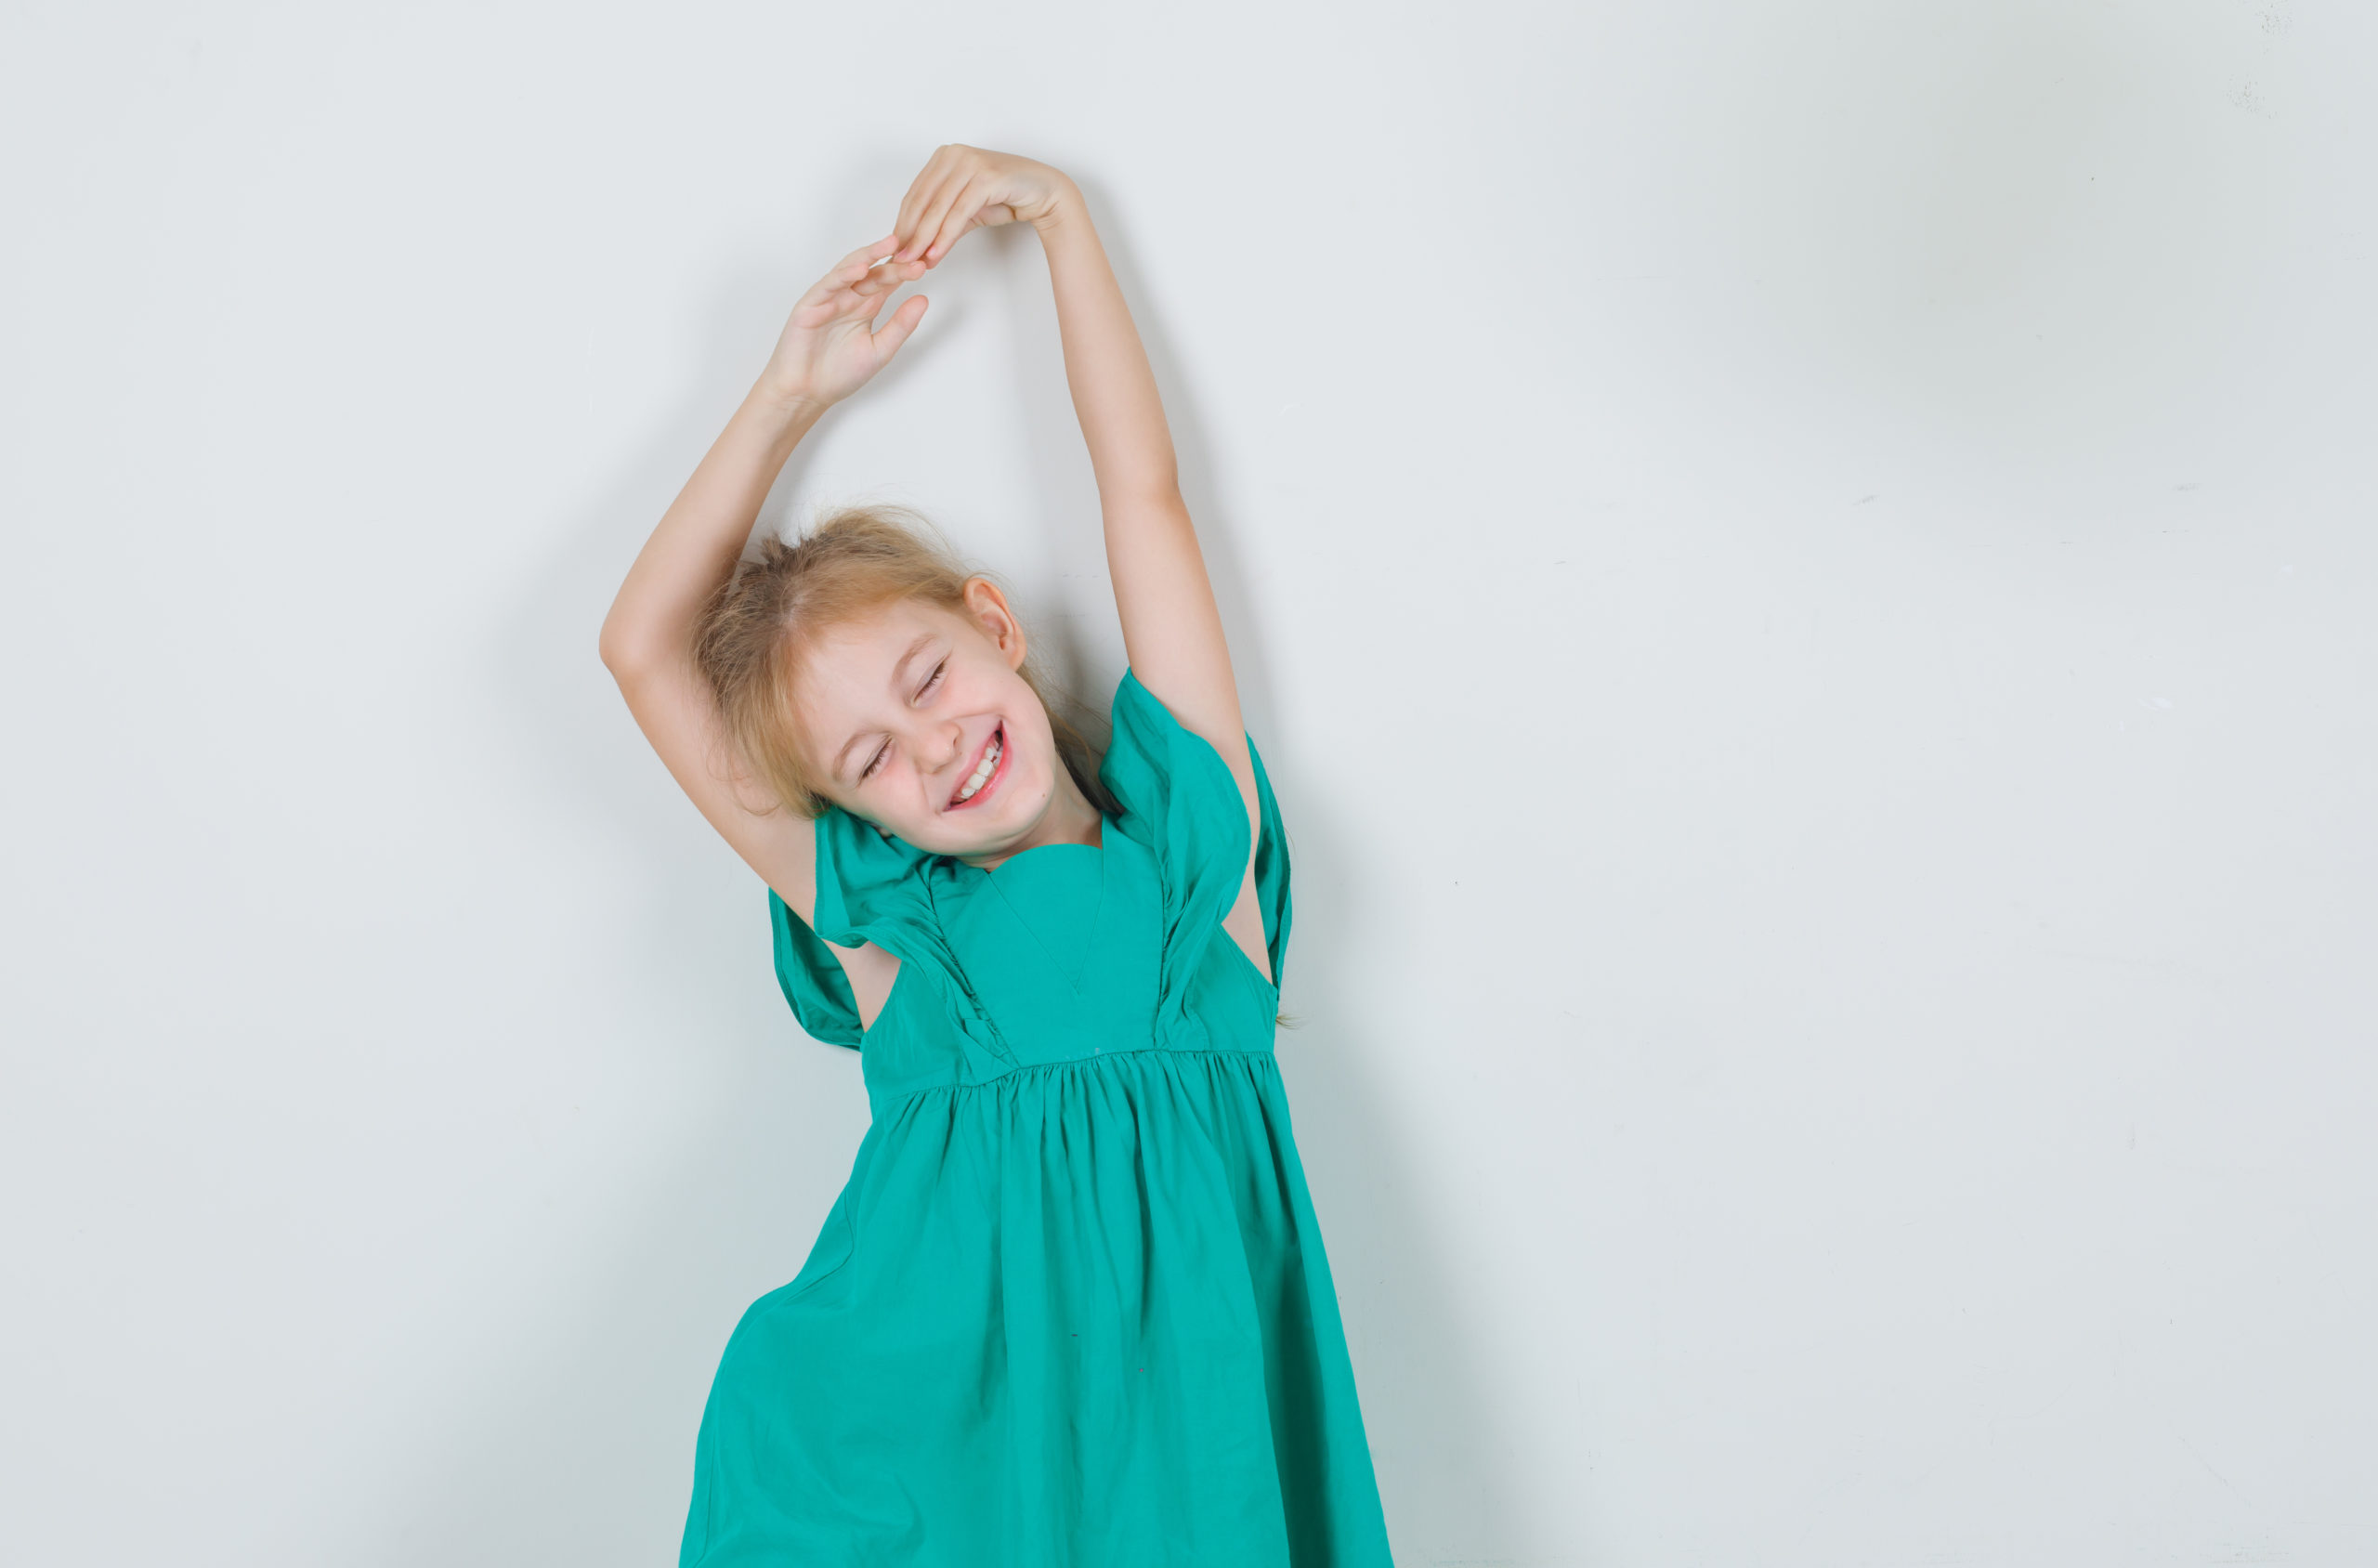 Little girl in green dress stretching arms with closed eyes and